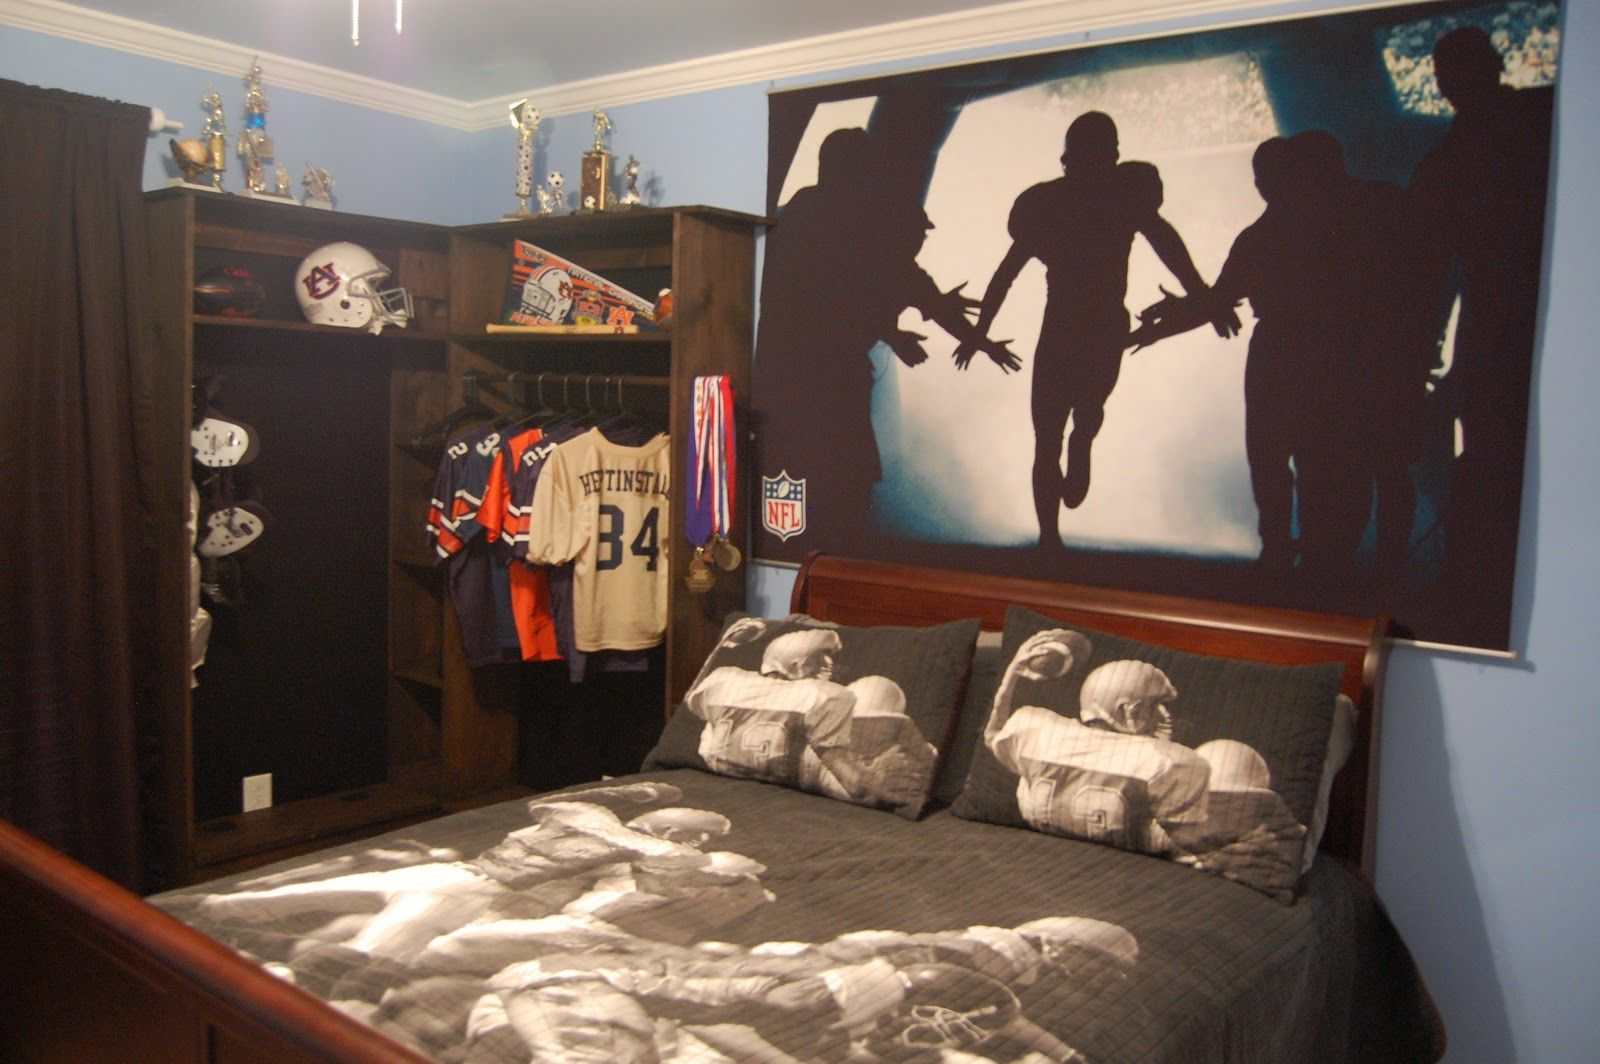 17 Best images about Boys room ideas on Pinterest  Room boys